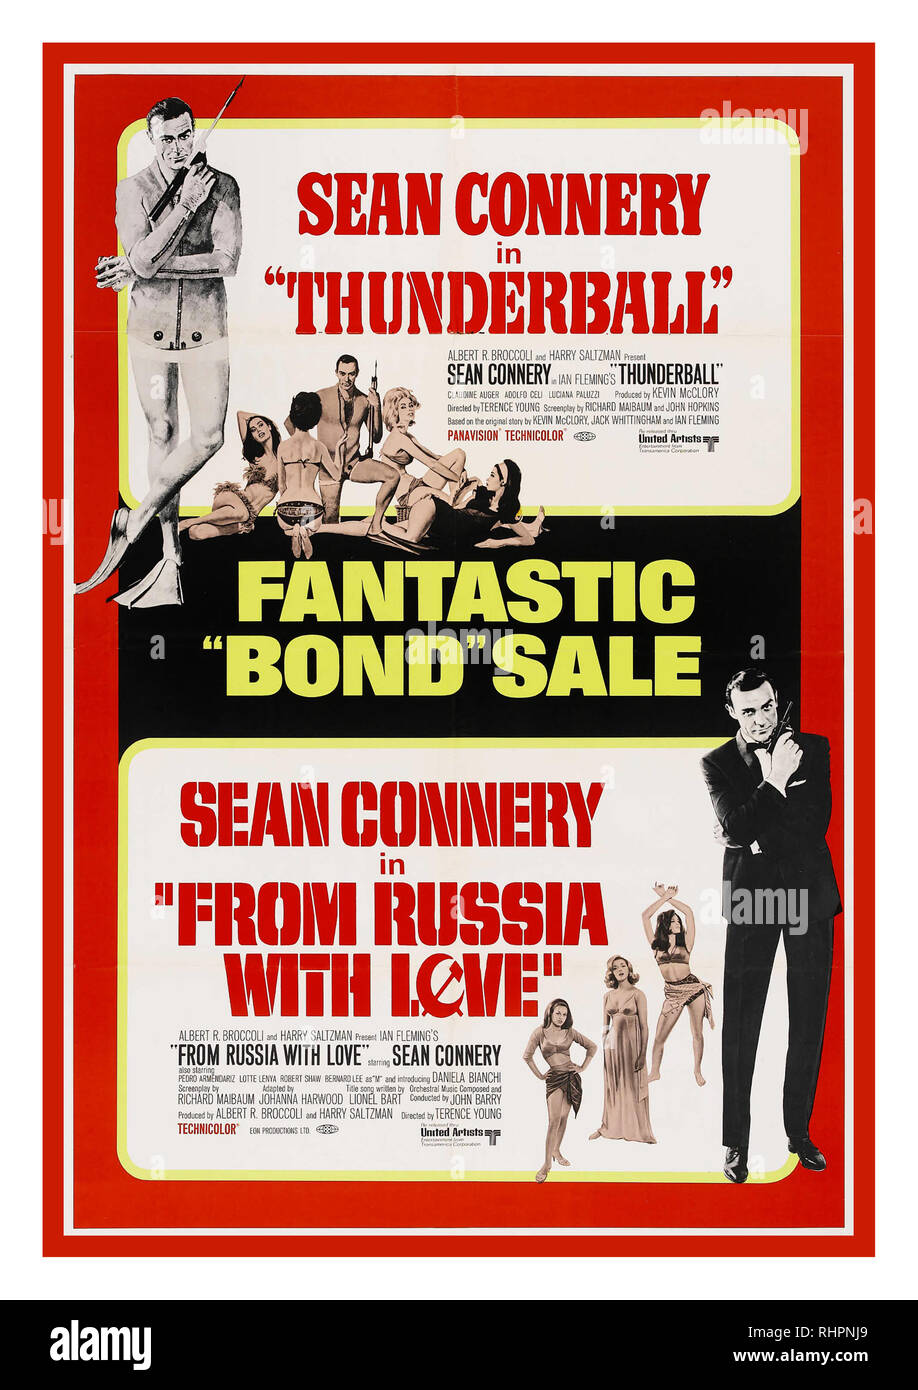 THUNDERBALL & FROM RUSSIA WITH LOVE 1960's Double James Bond Movie Poster showing Thunderball a 1965 British spy film and fourth in the James Bond series produced by Eon Productions, starring Sean Connery as the fictional MI6 agent James Bond. Adaptation of the novel of the same name by Ian Fleming, which in turn was based on an original screenplay by Jack Whittingham. It was directed by Terence Young AND...From Russia with Love a 1963 British spy film and the second in the James Bond film series produced by Eon Productions, as well as Sean Connery's second role as MI6 agent James Bond. - Stock Image